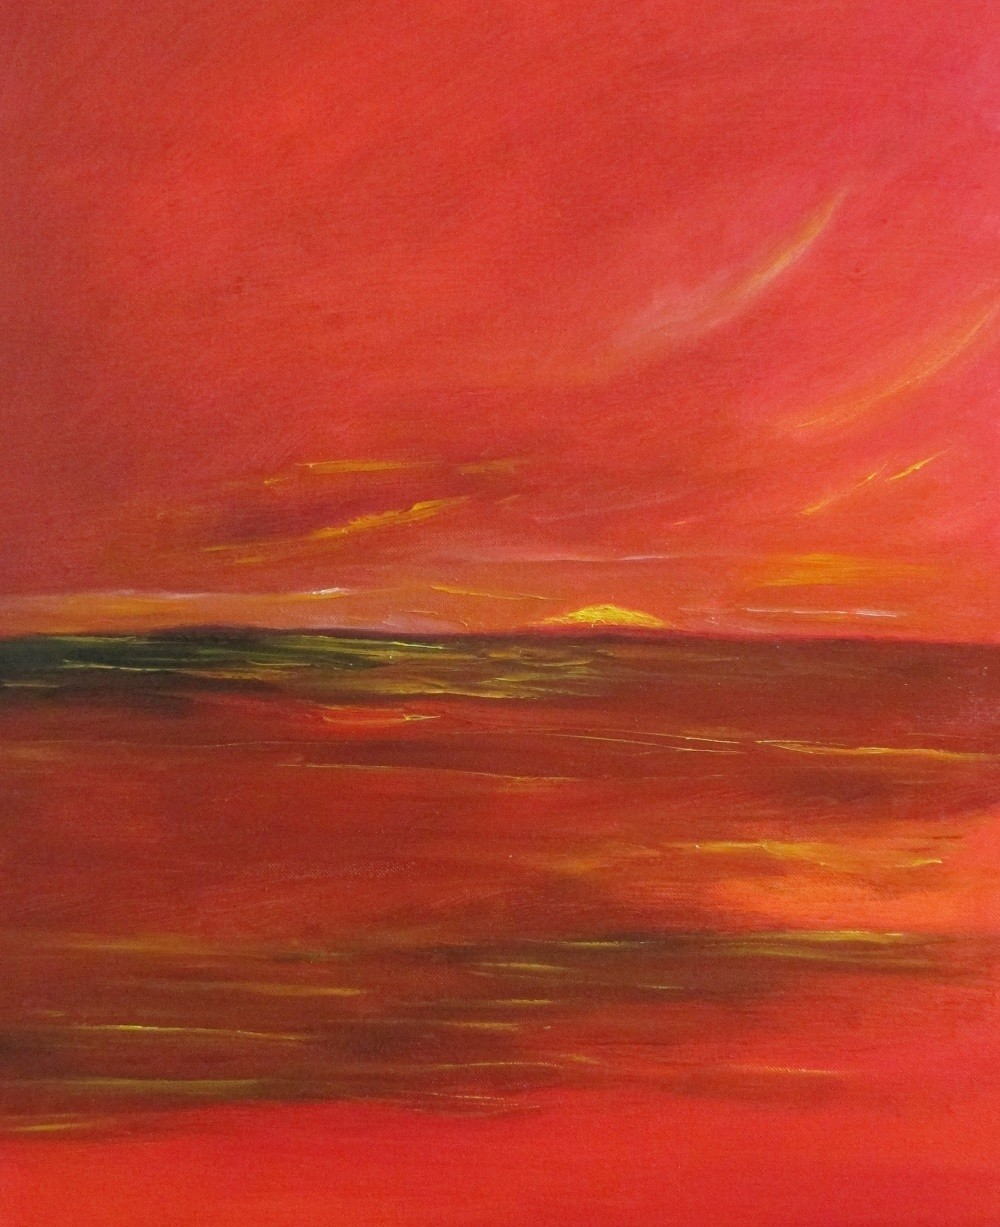 Red Dawn - Aurore Rouge